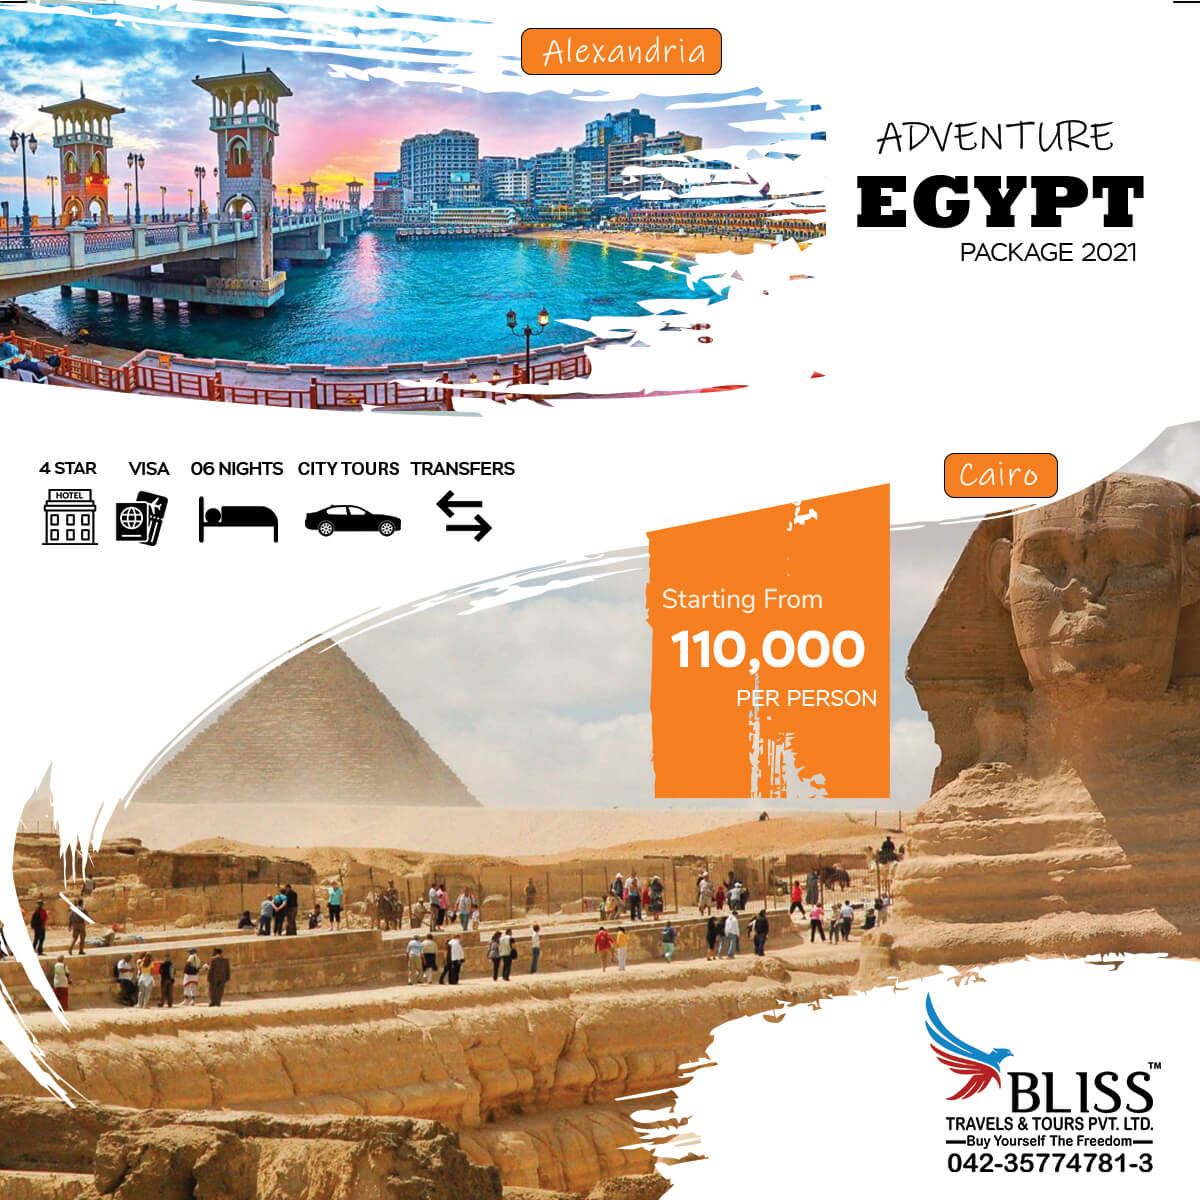 Adventure-Egypt-Package-2021